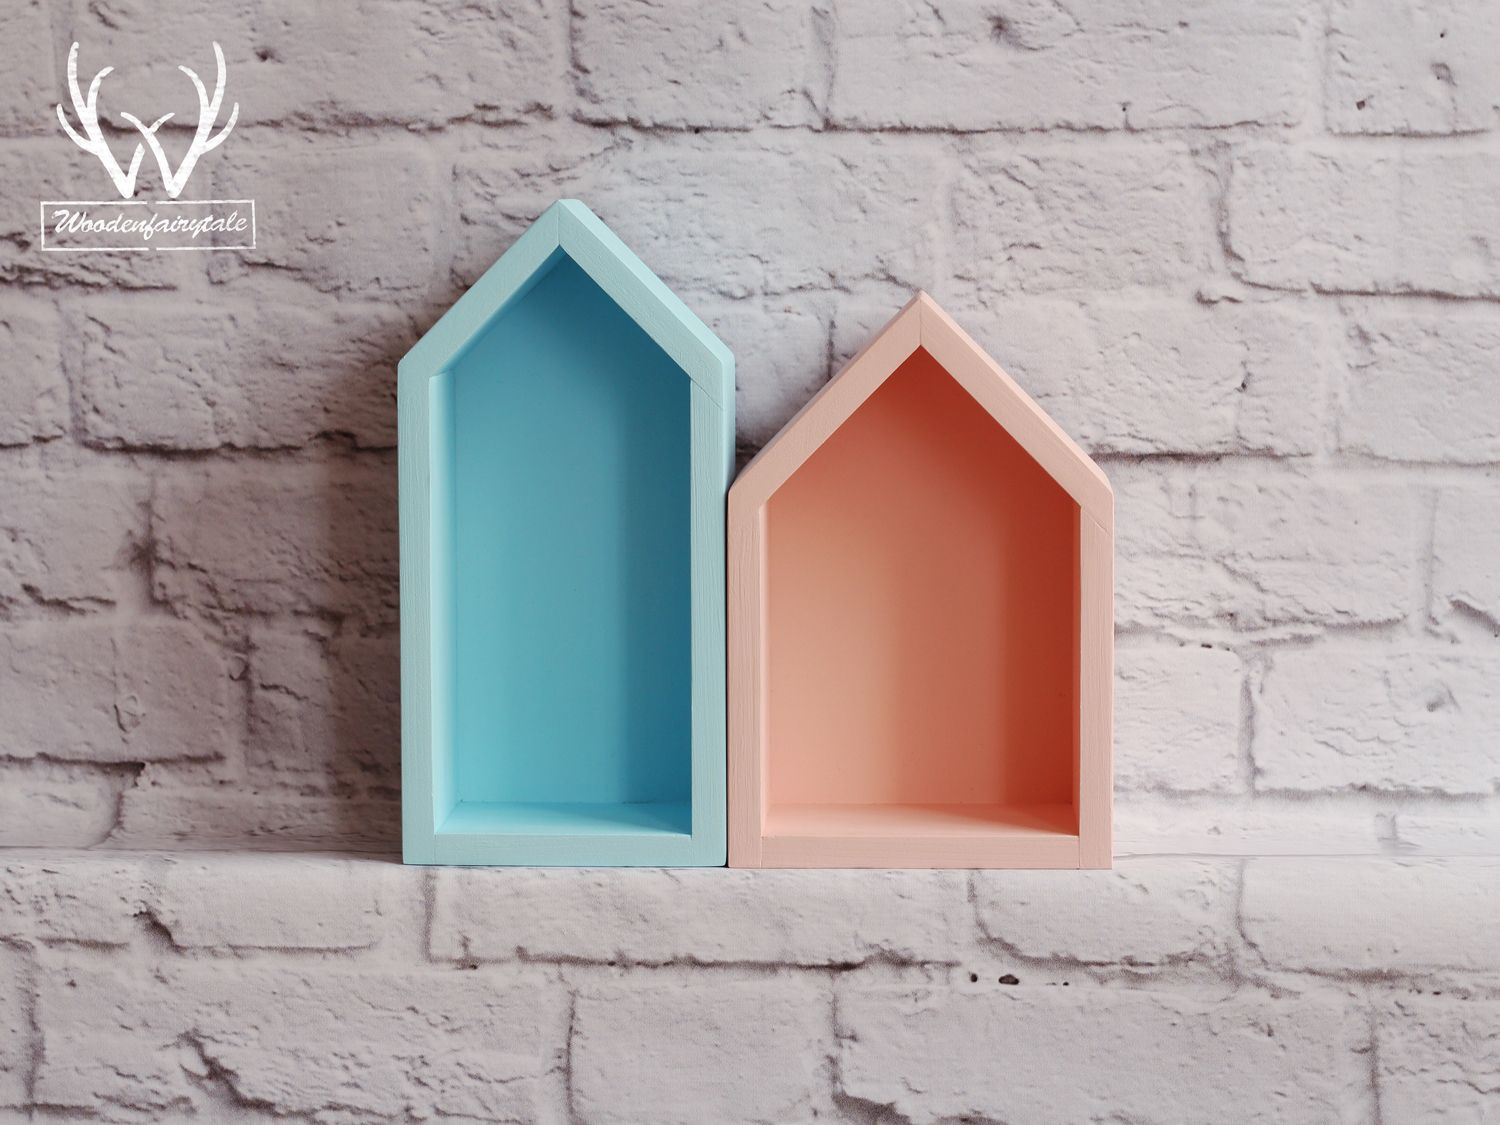 Amazing set of peachy and blue house-shaped shelves.